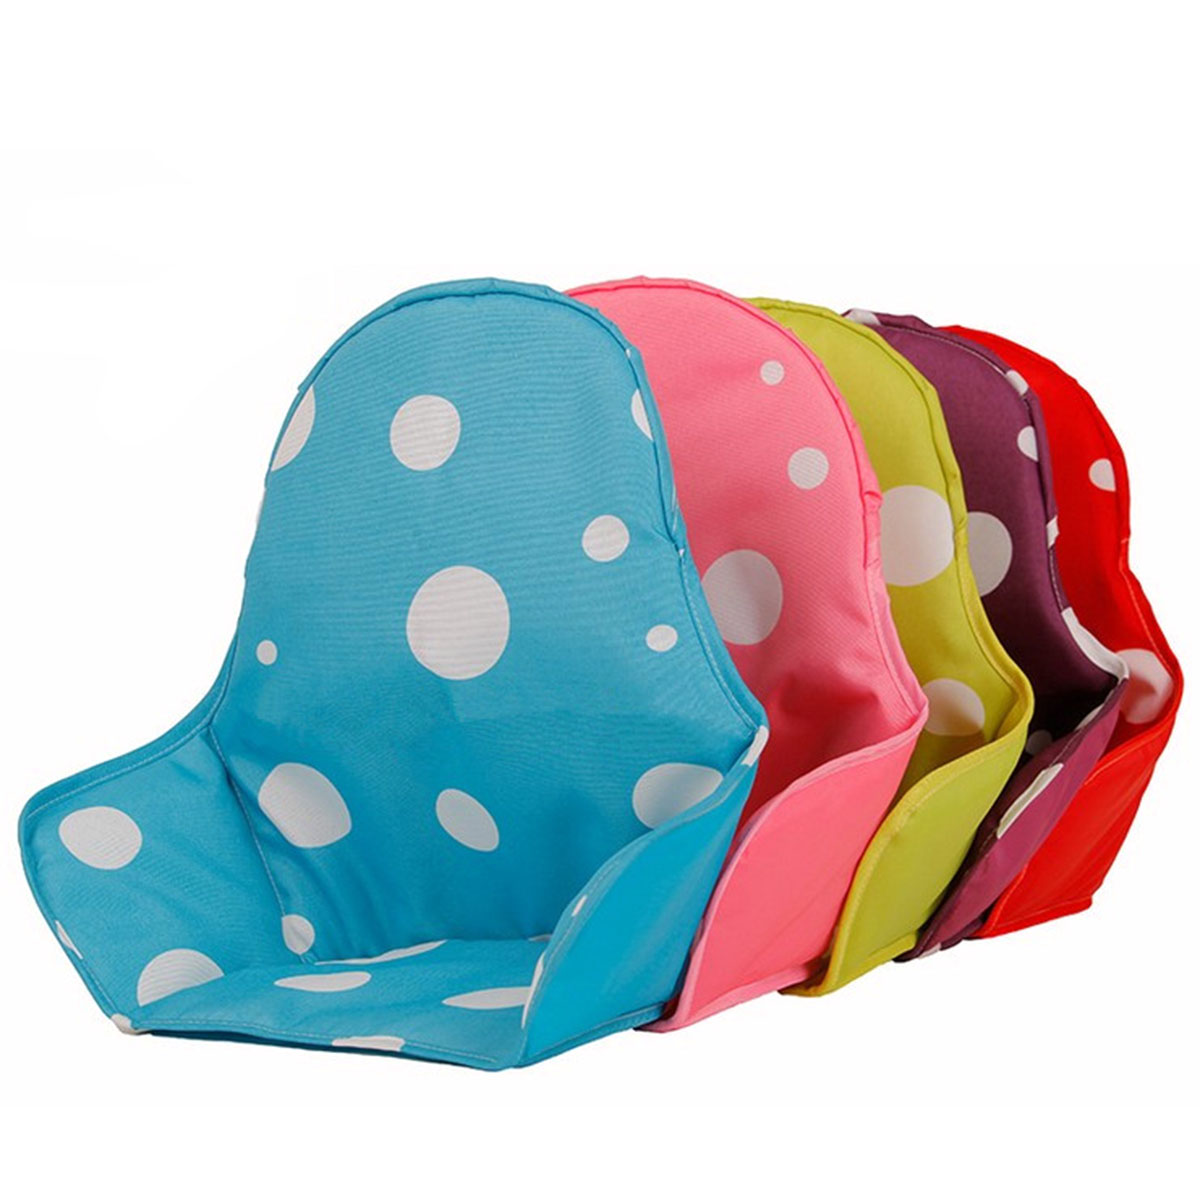 Baby Booster Feeding Chair Cushion Cover Portable Seat Kids Child Children High Chairs Mats Pads Cushion Stroller Booster Seats